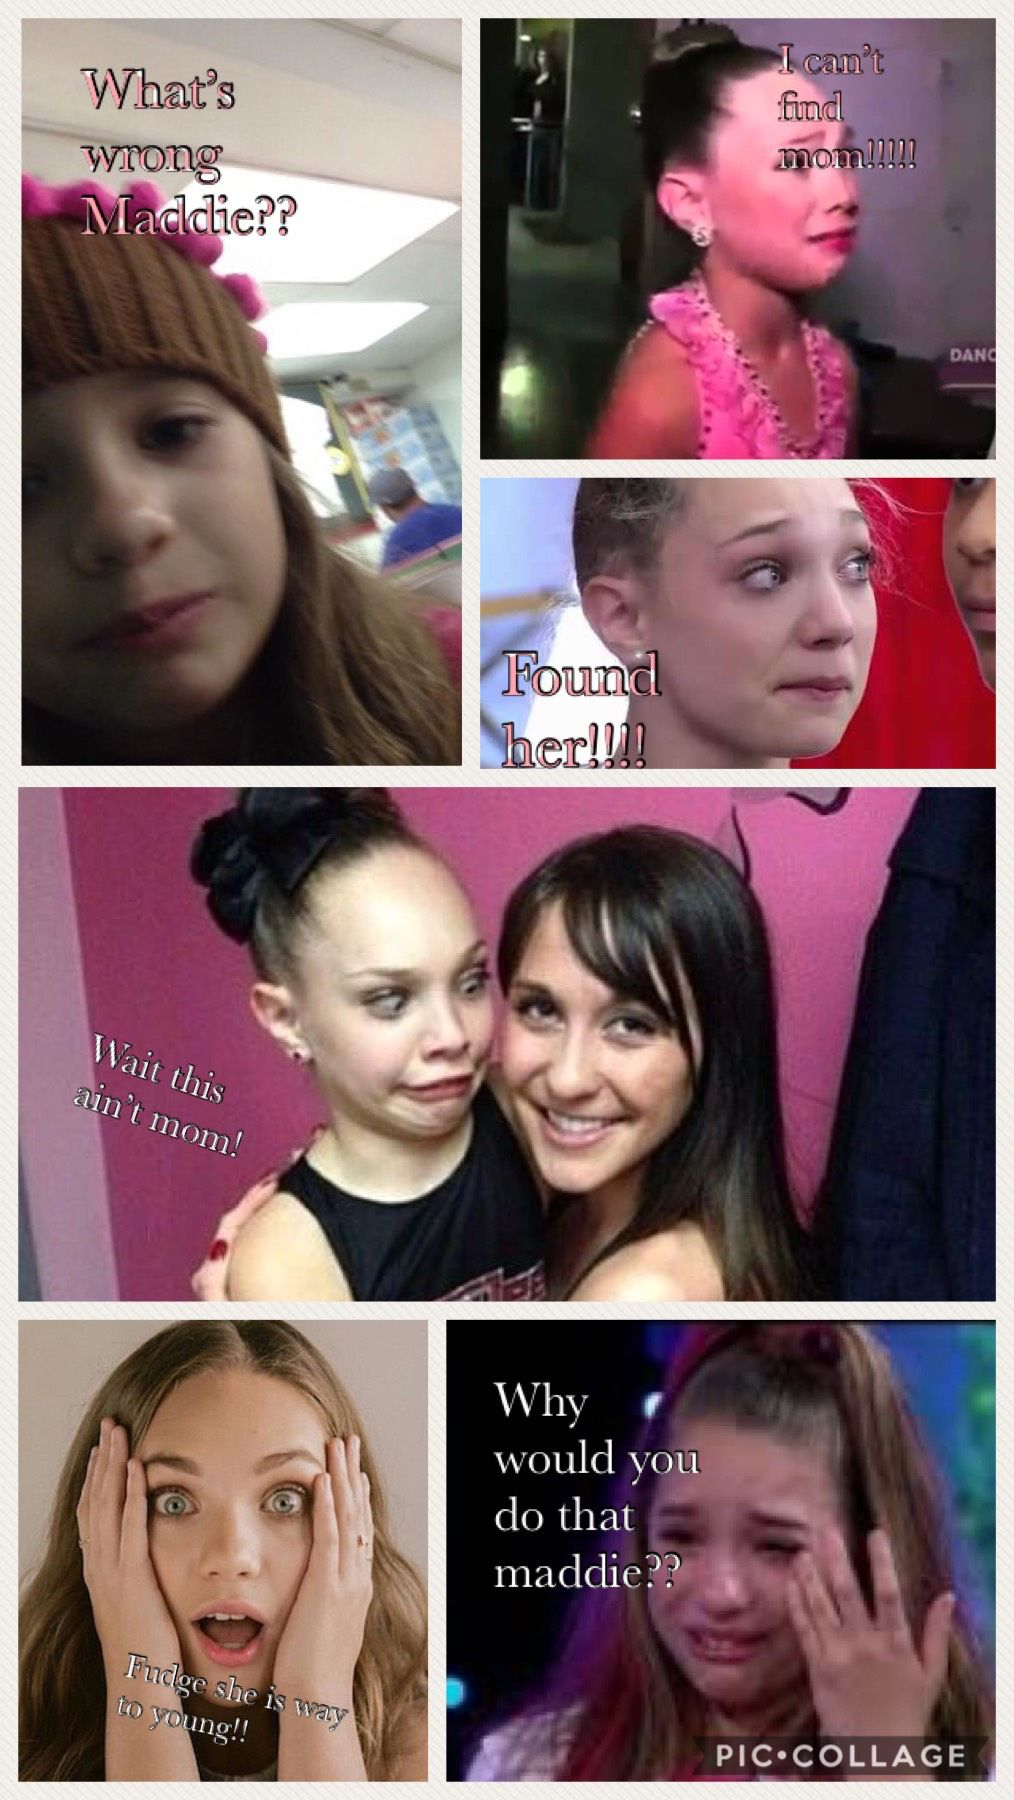 Pin By Angela Eason On Dance Moms Funny Stuff Dance Moms Memes Dance Moms Moments Dance Moms Funny